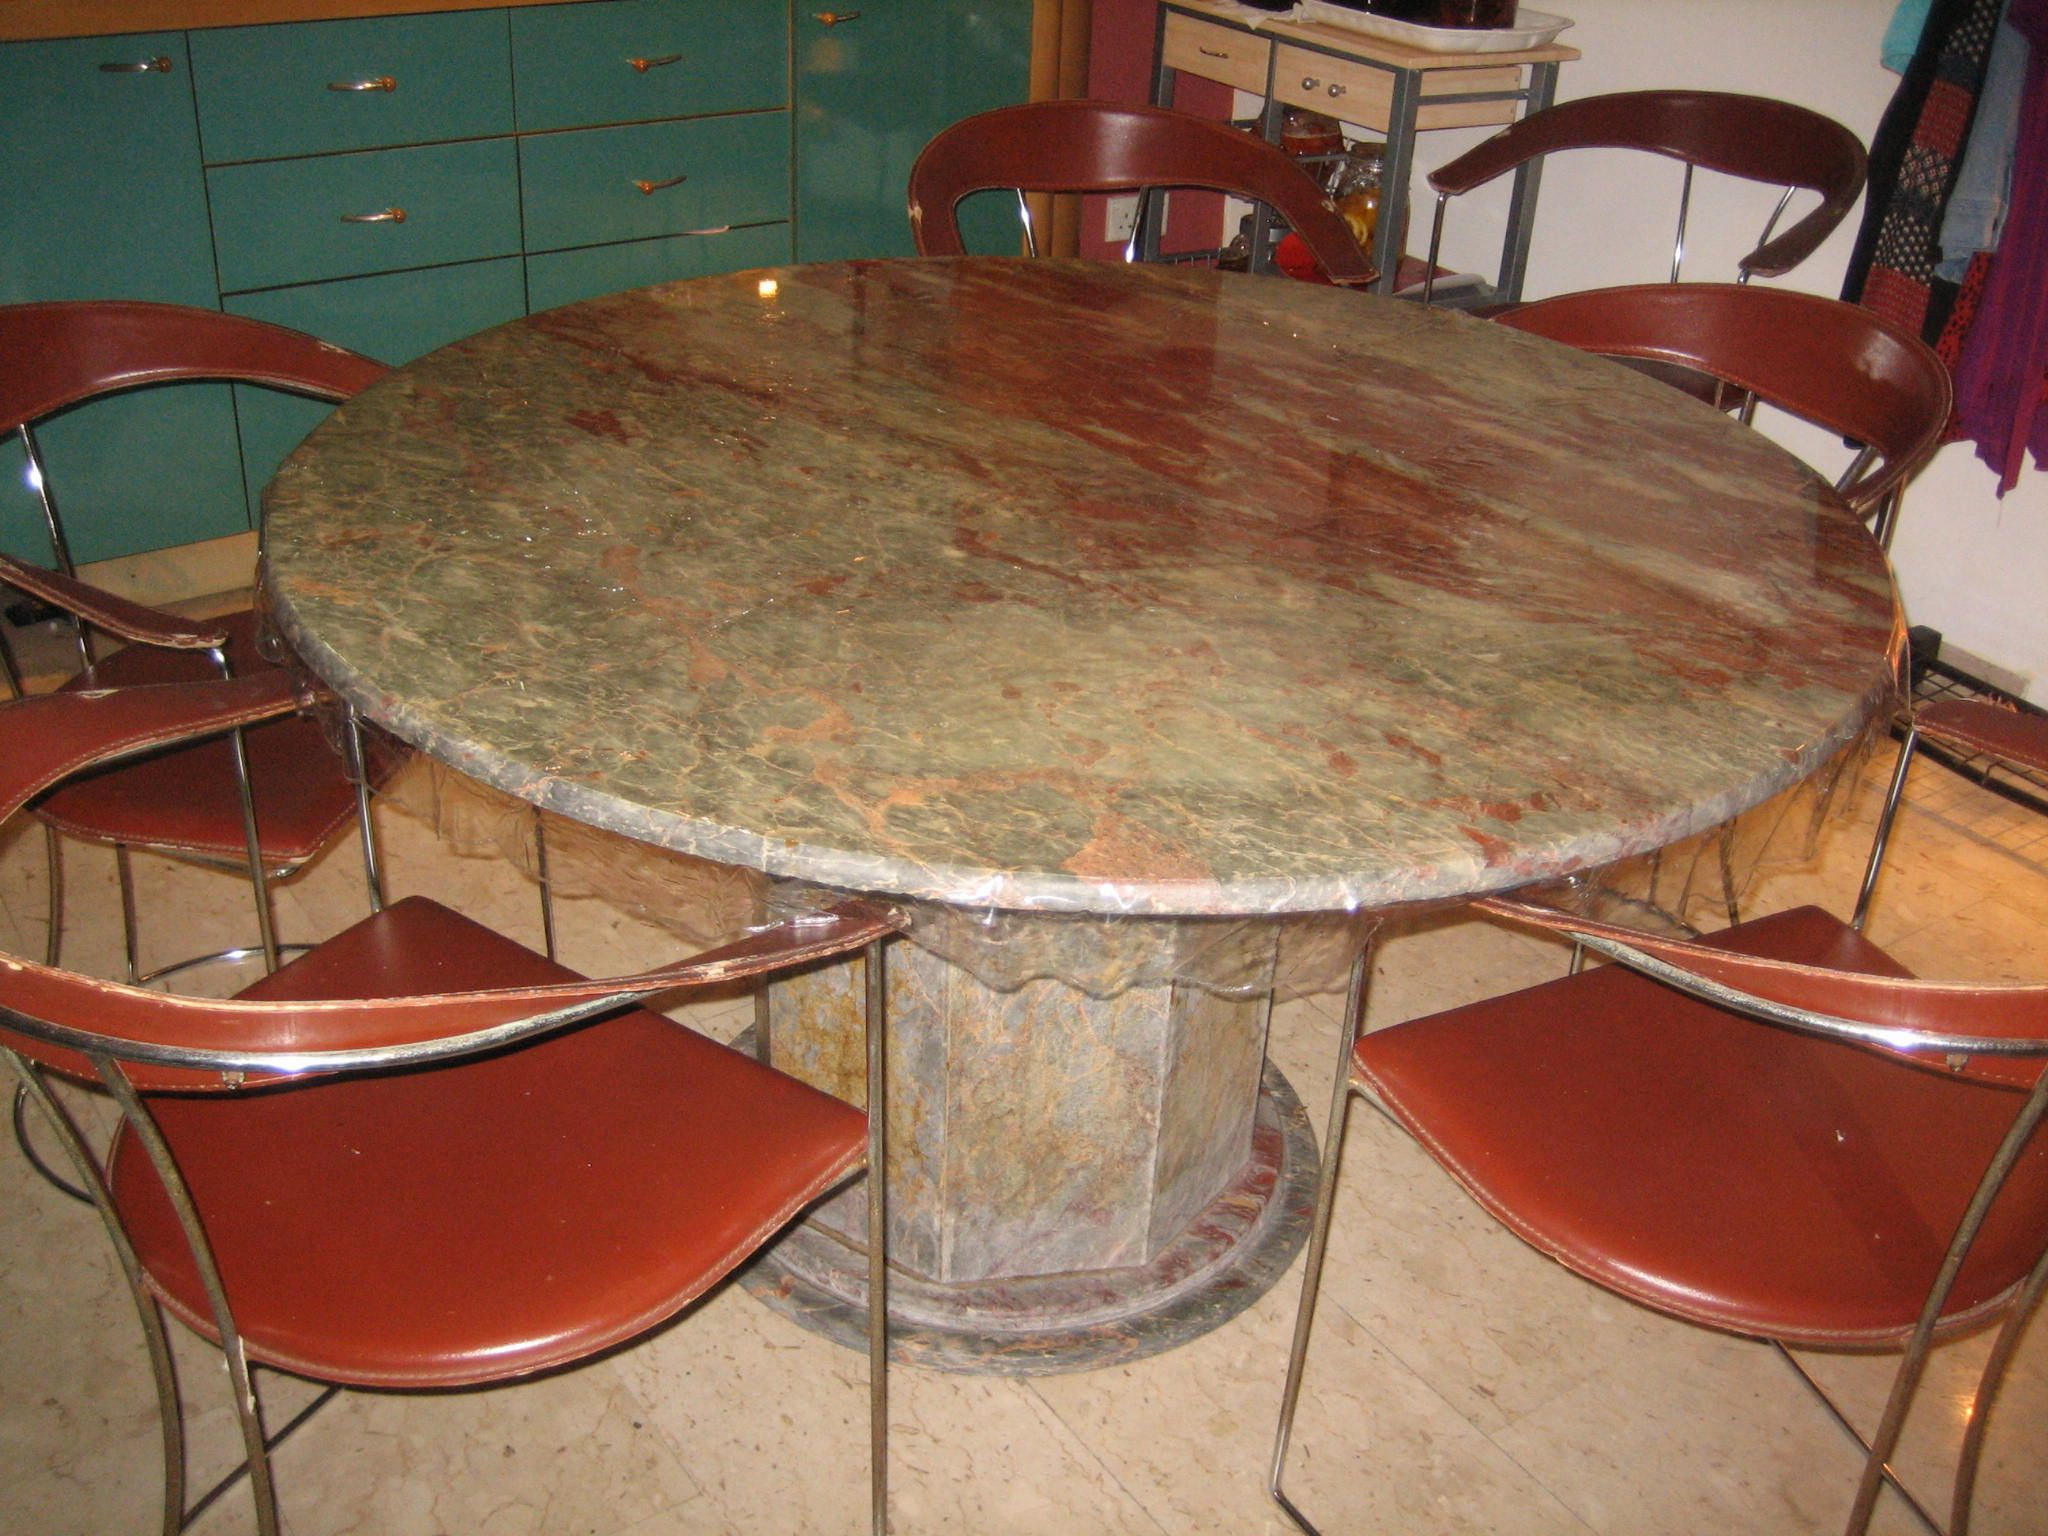 Dining Table With 6 Chairs In Vhome S Garage Sale Singapore Bedok